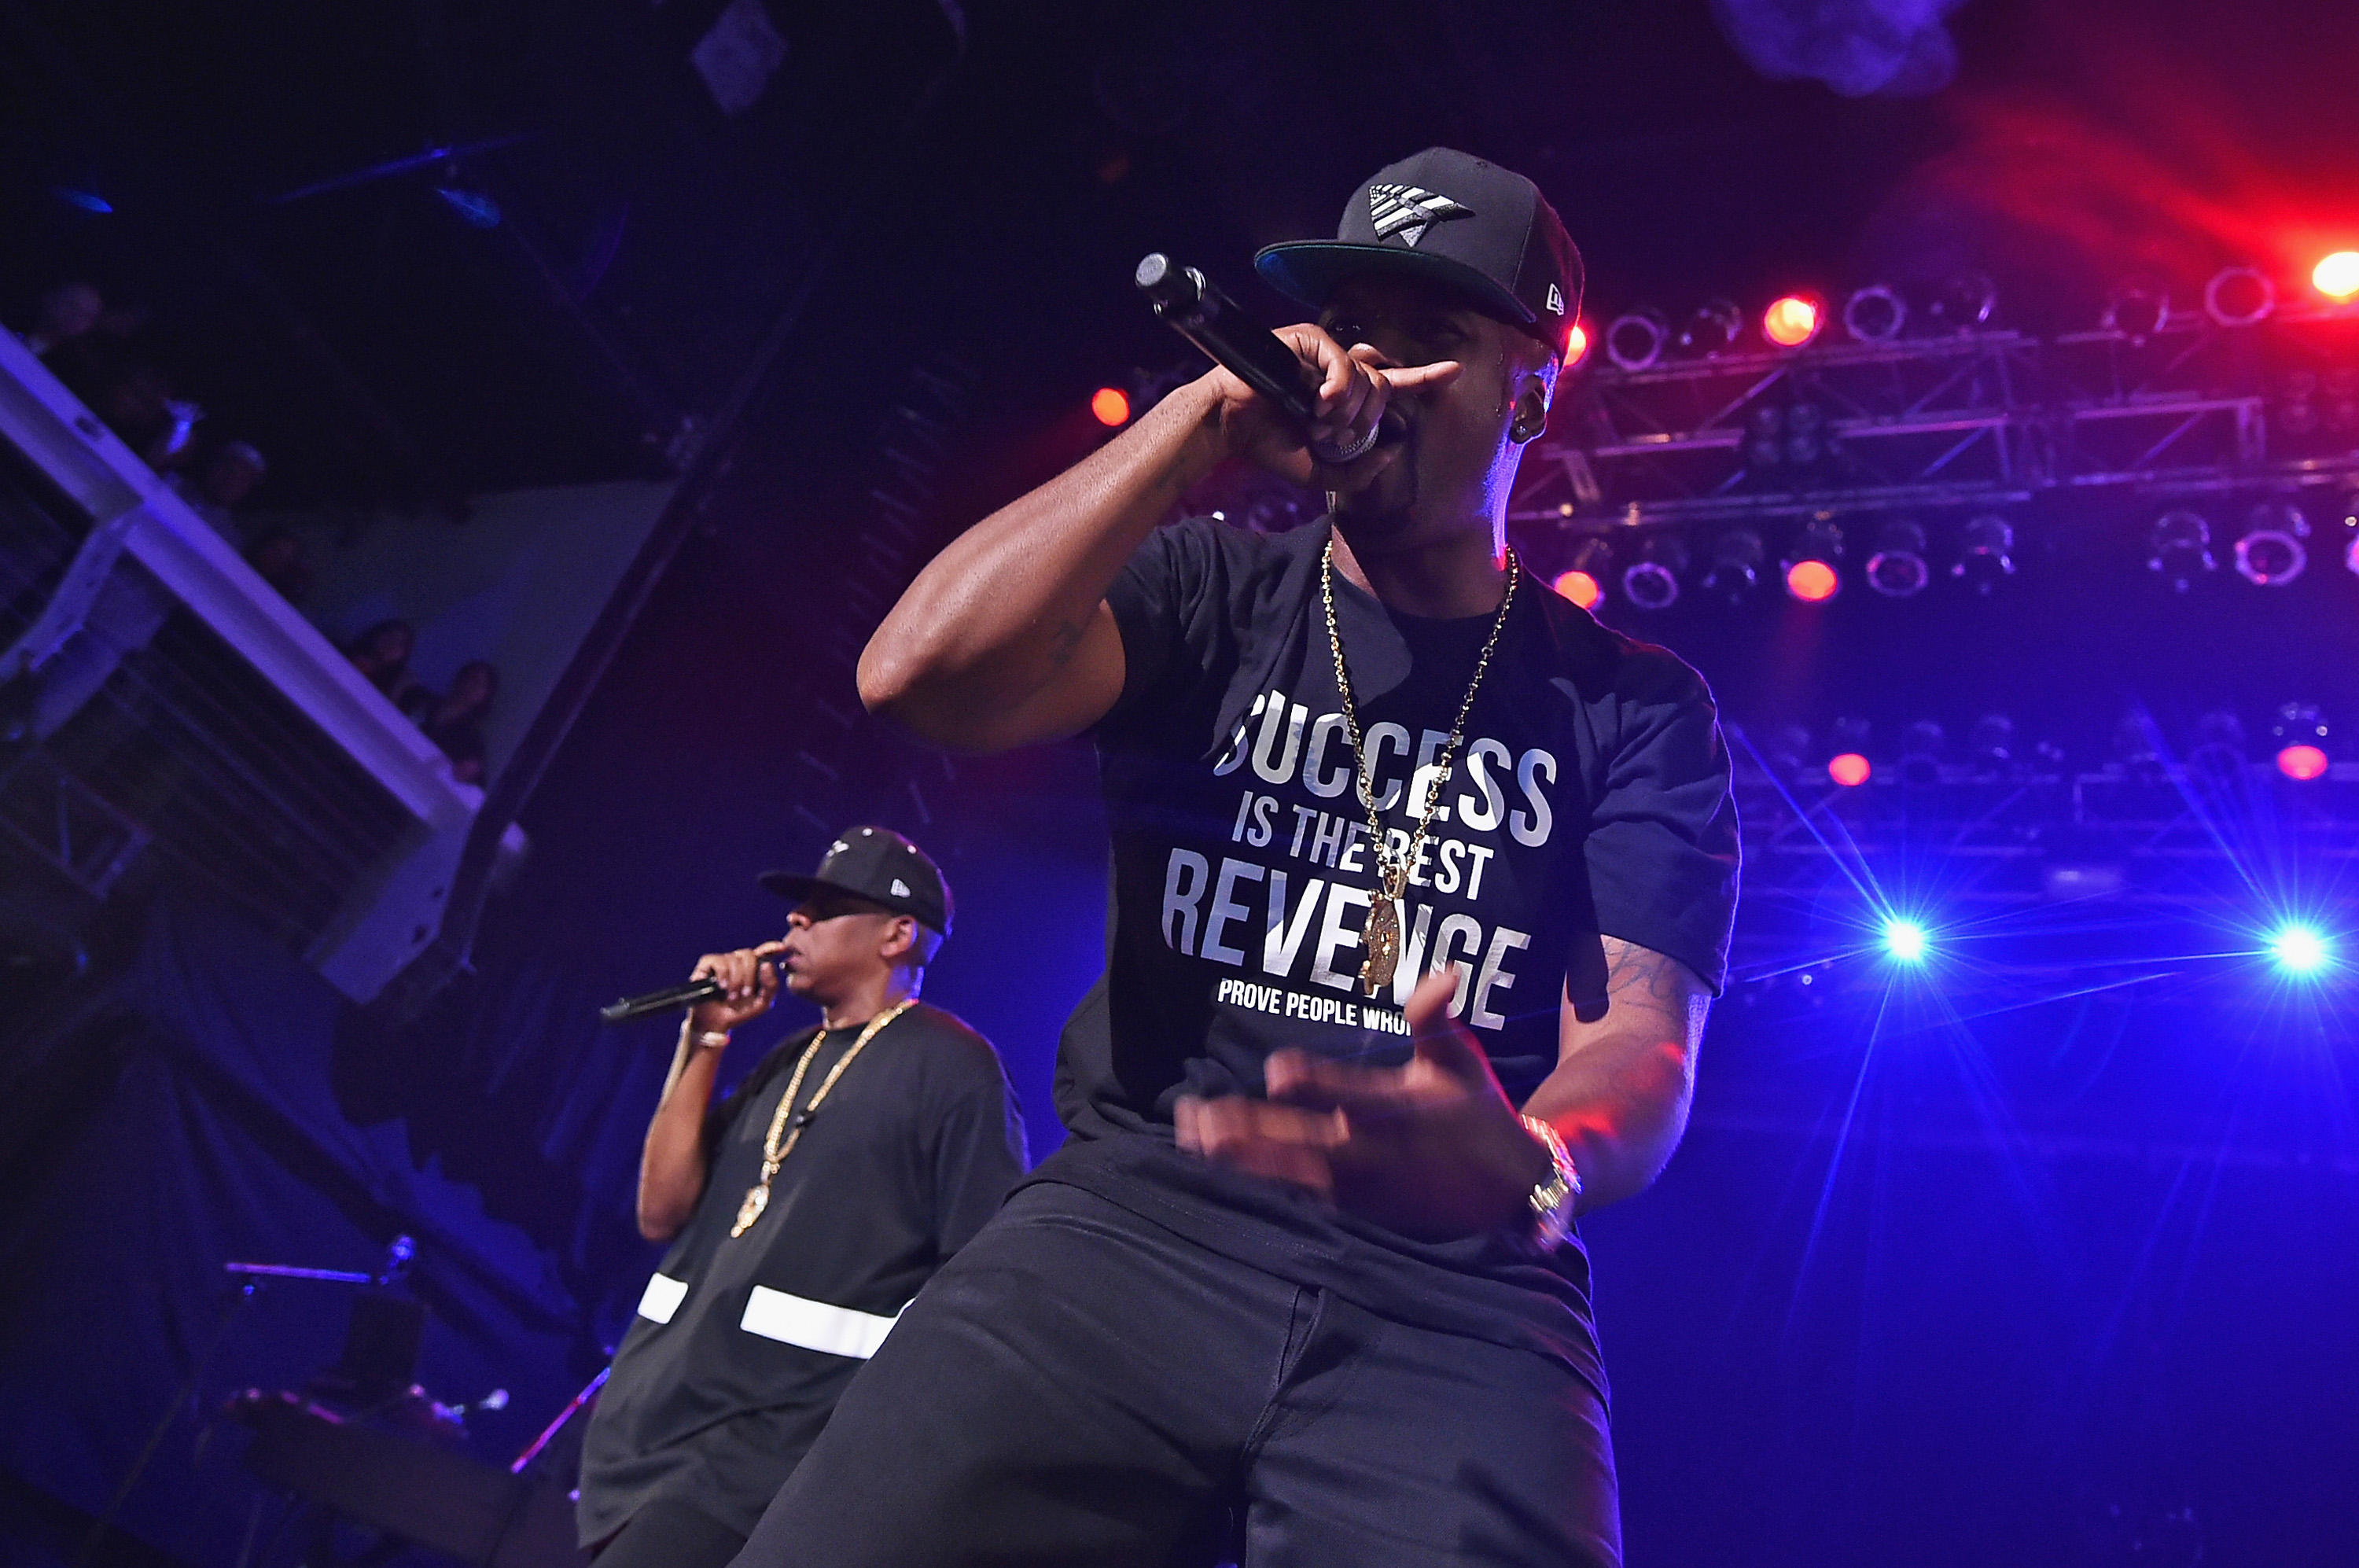 NEW YORK, NY - MAY 16:  Jay-Z (L) and Memphis Bleek perform during TIDAL X: Jay-Z B-sides in NYC on May 16, 2015 in New York City.  (Photo by Theo Wargo/Getty Images for Live Nation)